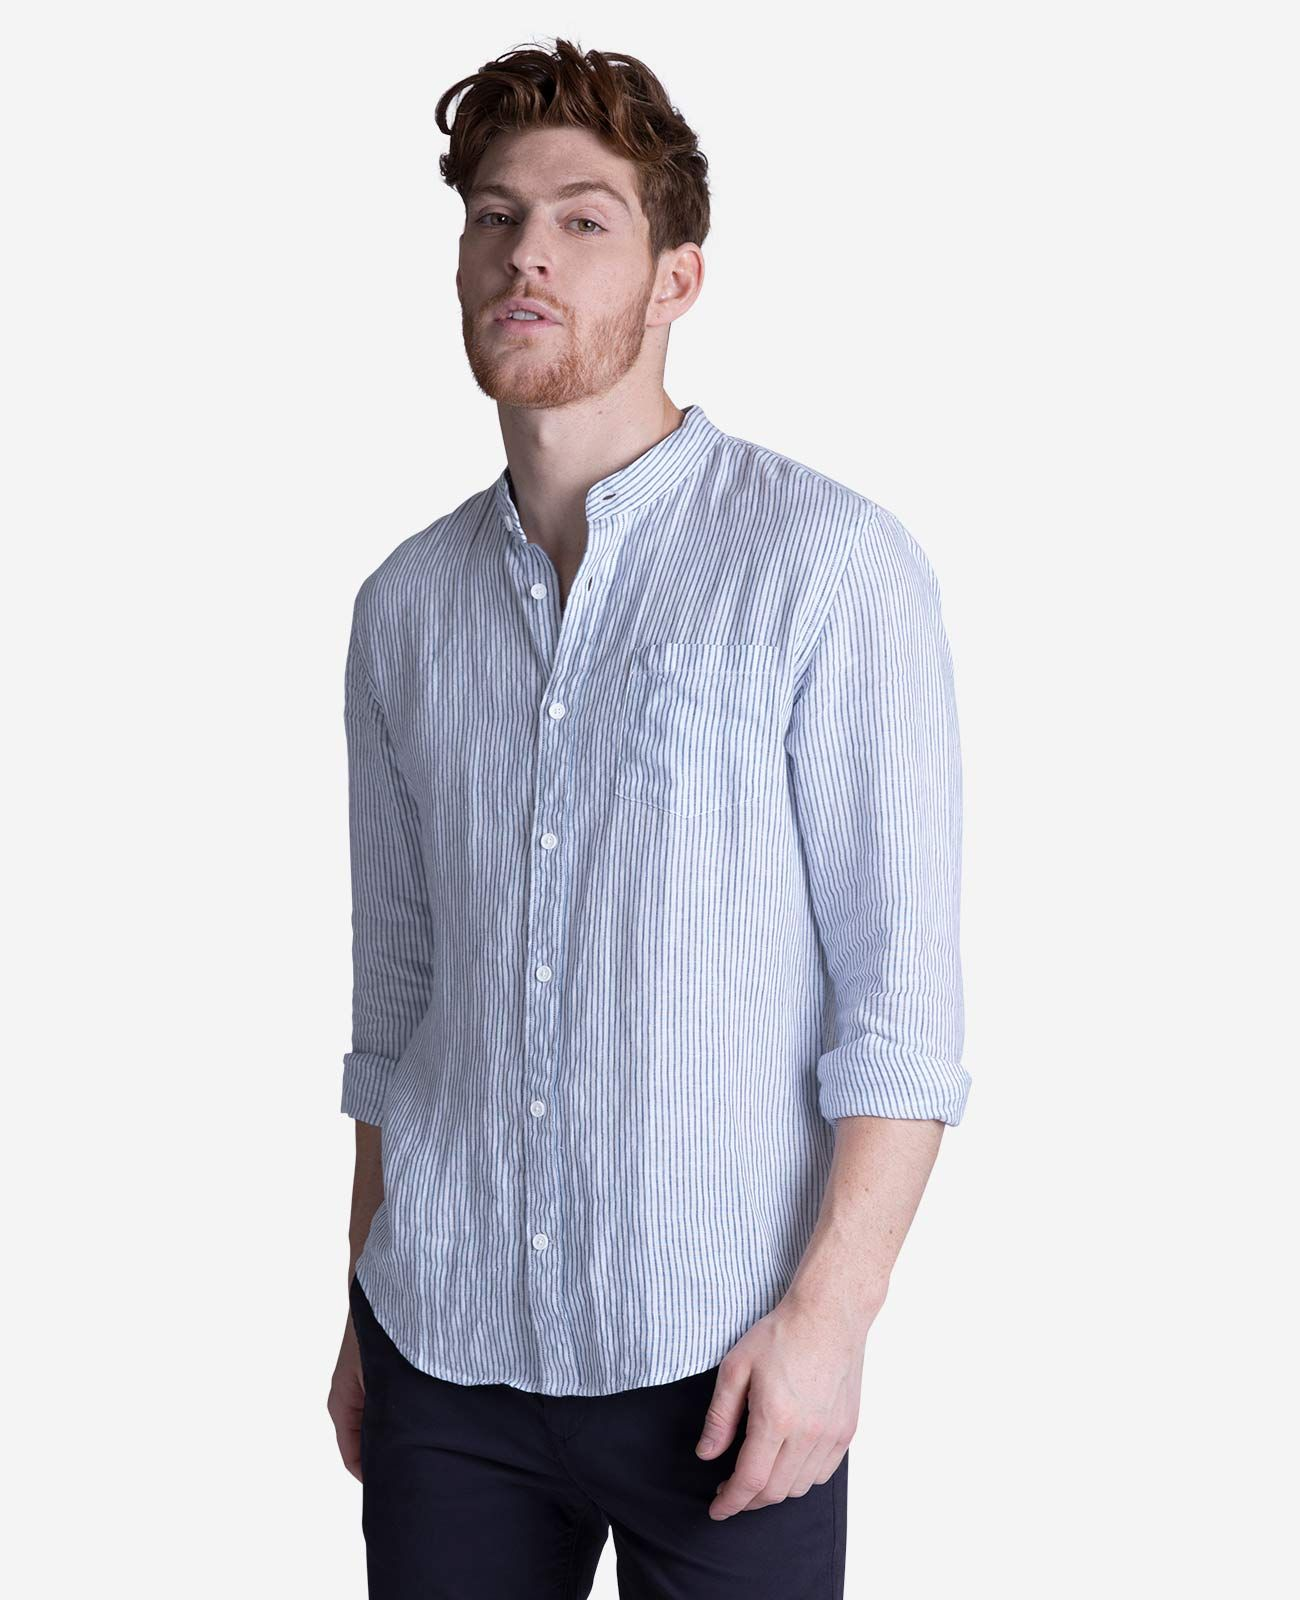 Mens White Linen Collarless Shirts Chad Crowley Productions